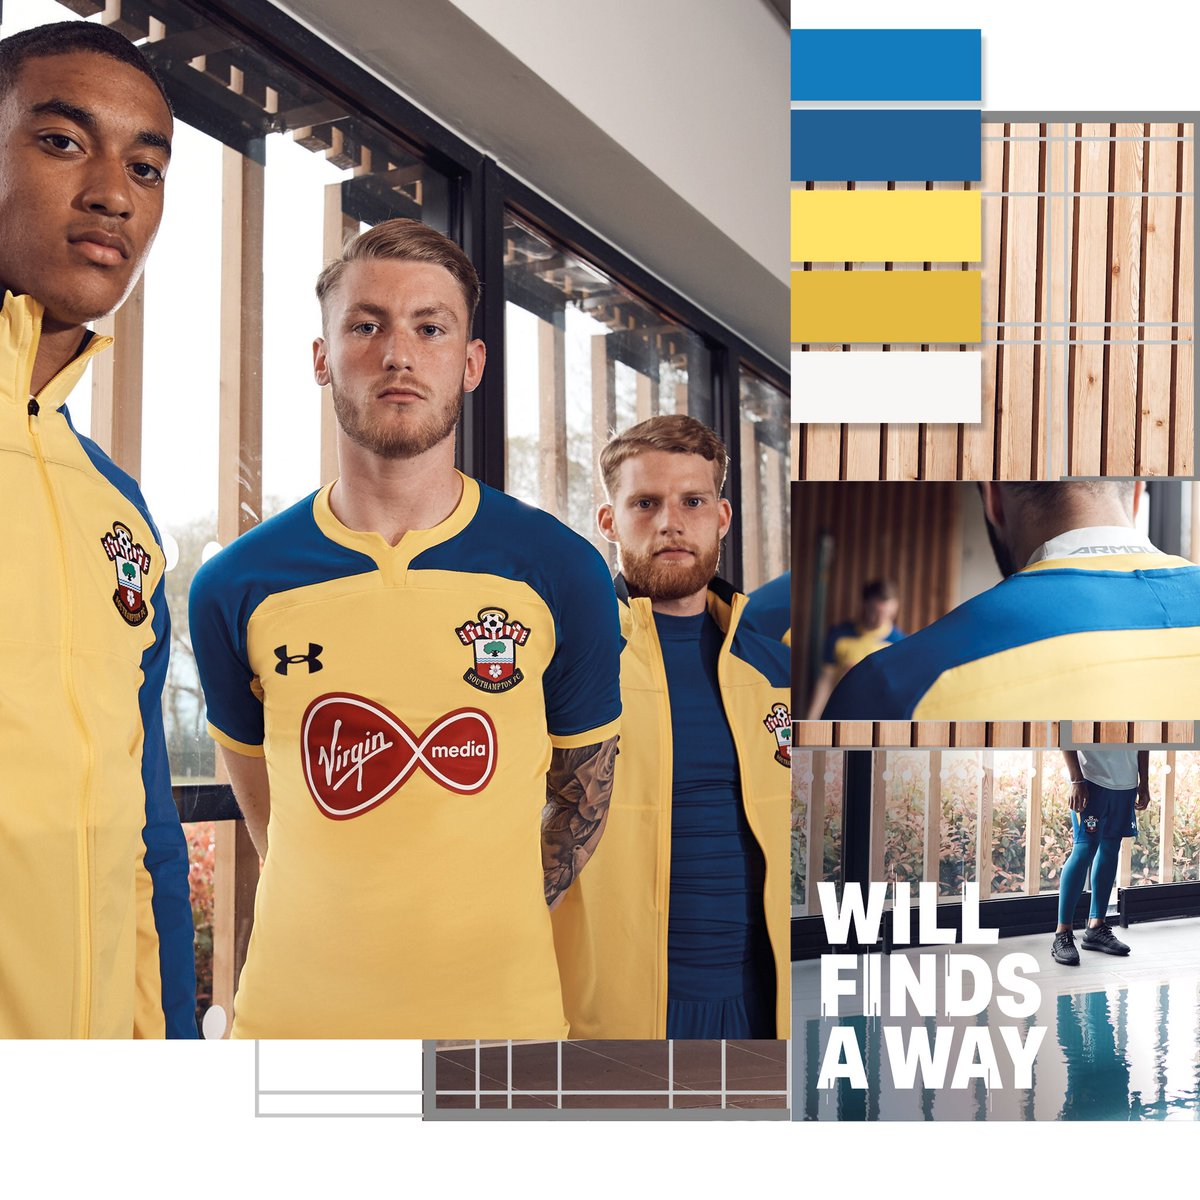 115c90851 ... Click to enlarge image southampton 18 19 under armour away kit e.jpg